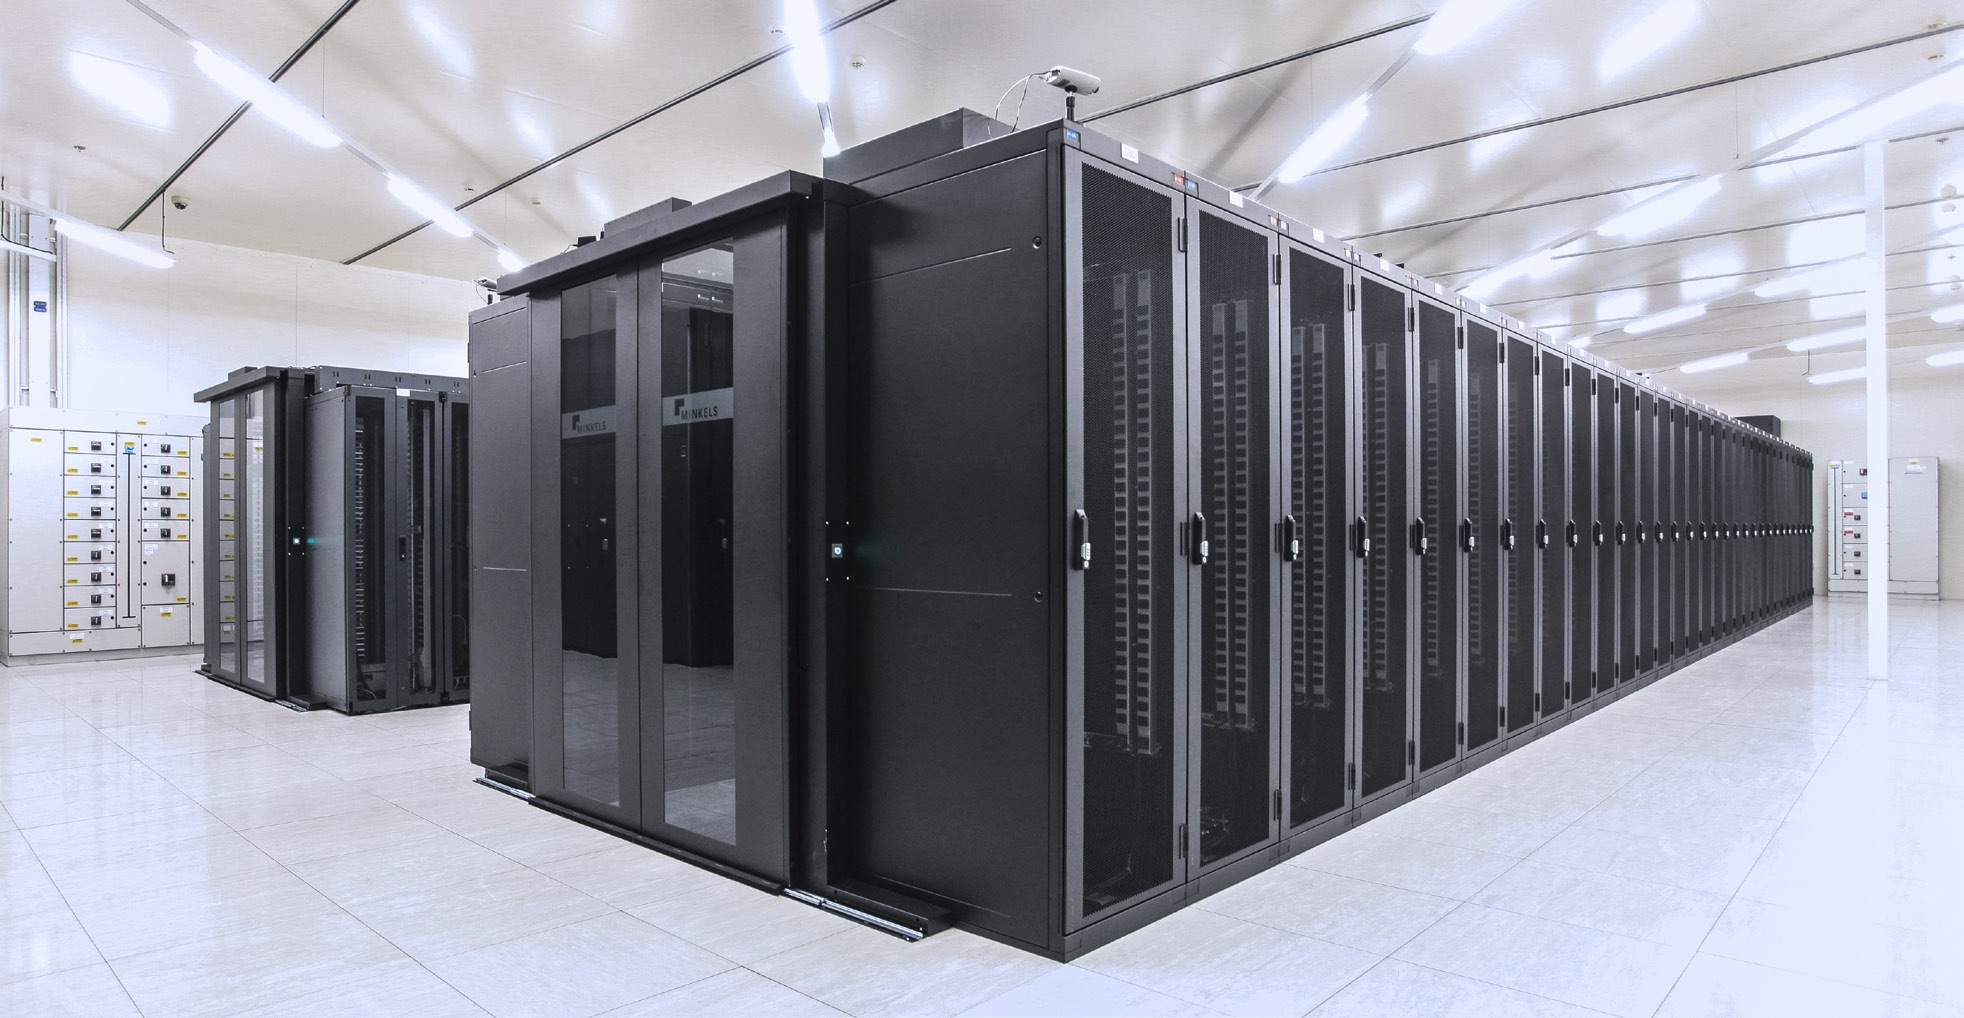 data centers 27 data centers around the world, including 2 of the largest ones since its first  data center in paris back in 2003, ovh keeps on innovating when it comes to.